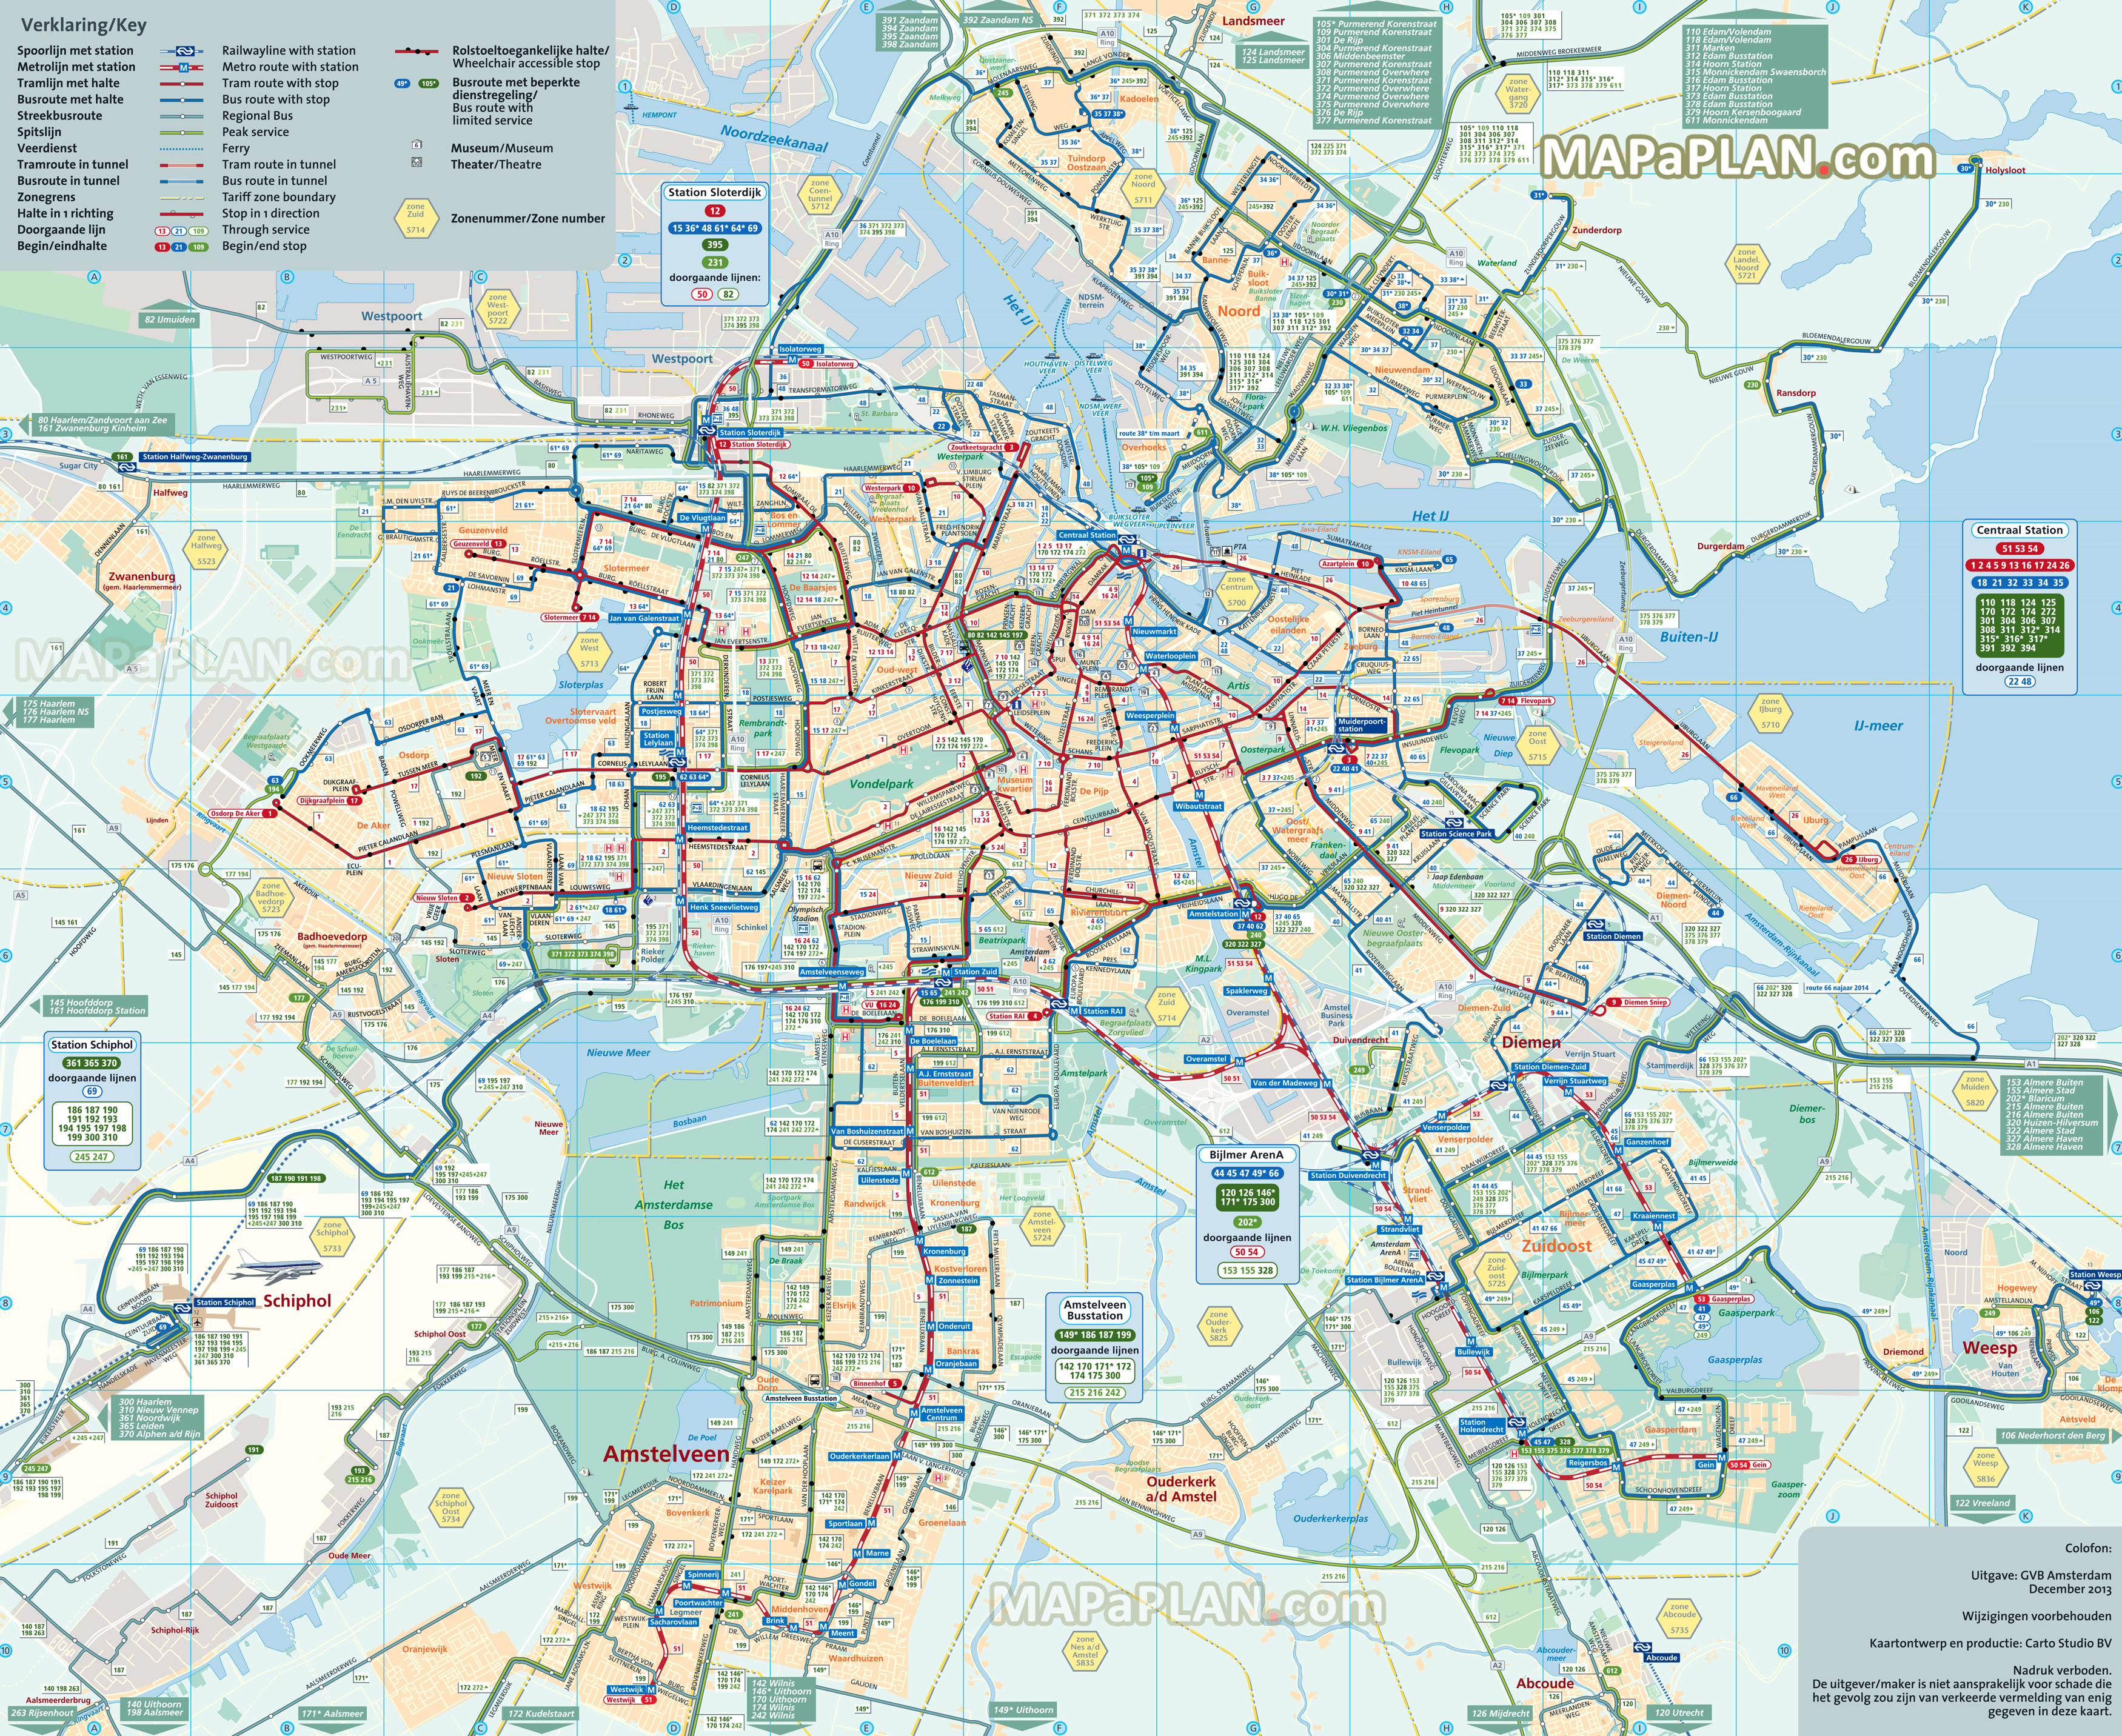 Amsterdam Maps - Top Tourist Attractions - Free, Printable City - Amsterdam Tram Map Printable